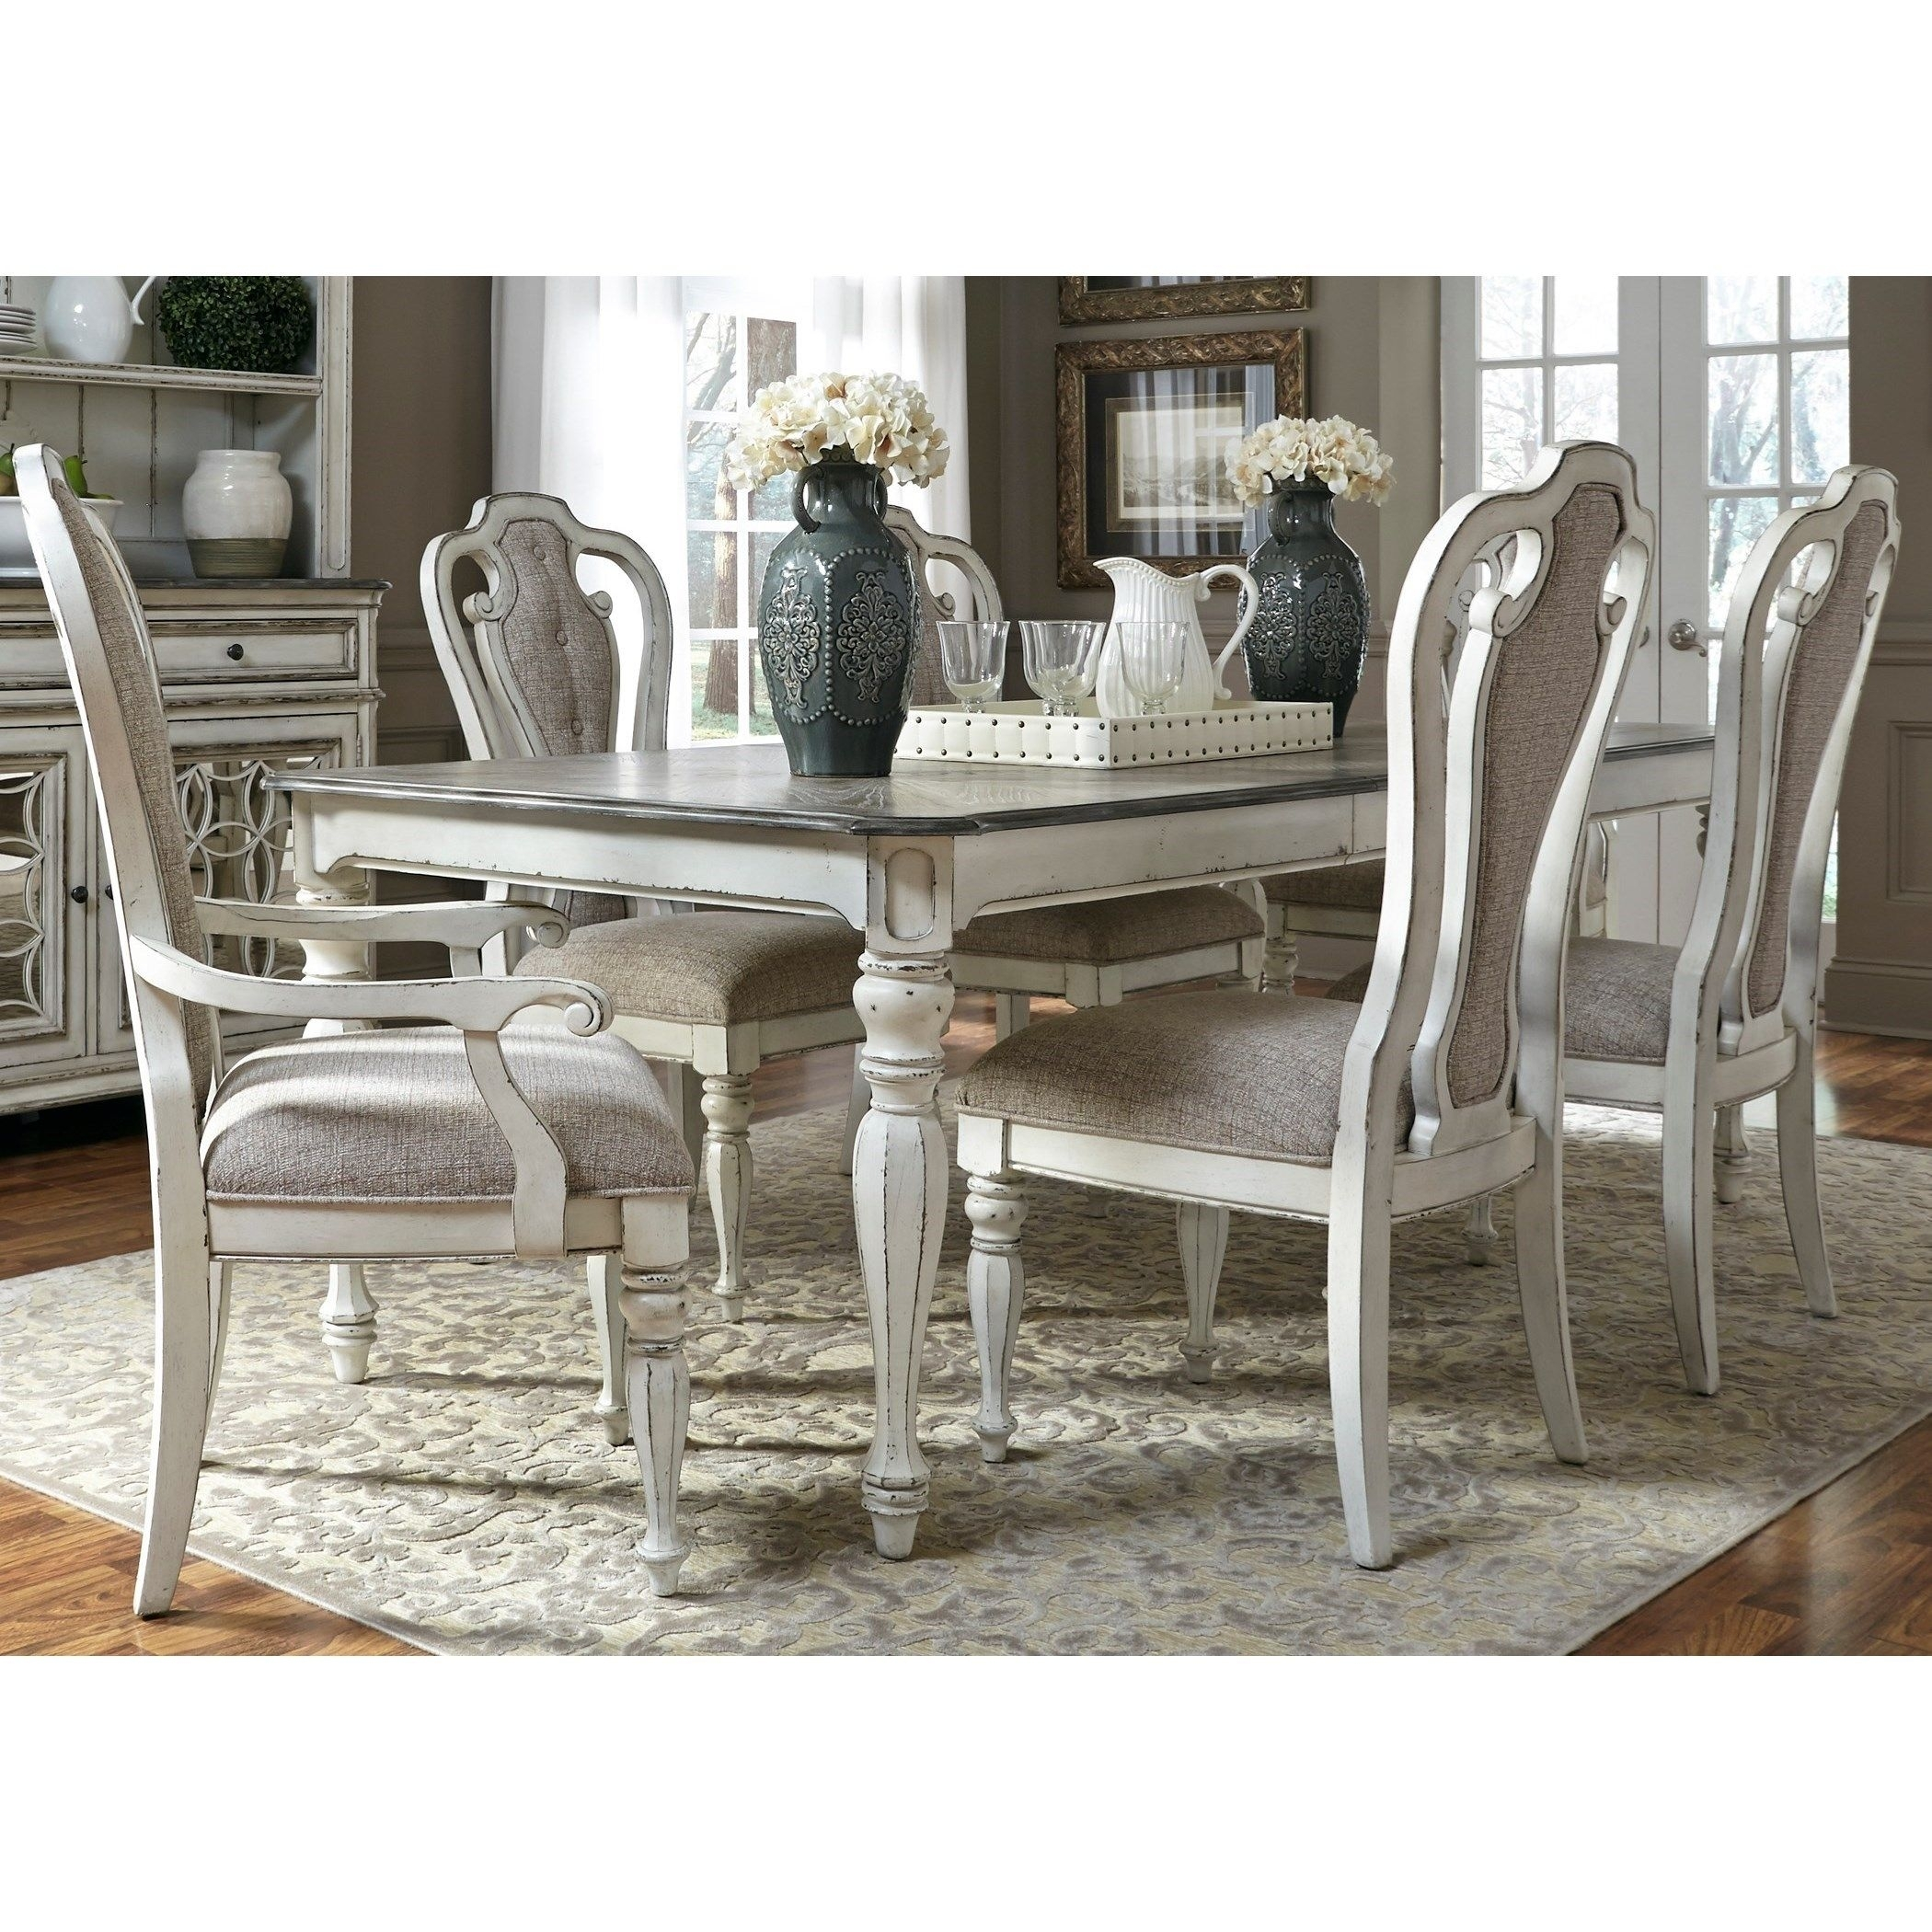 Magnolia Manor Dining 7 Piece Rectangular Table Set With Leaf Intended For 2018 Crawford 7 Piece Rectangle Dining Sets (Photo 12 of 20)